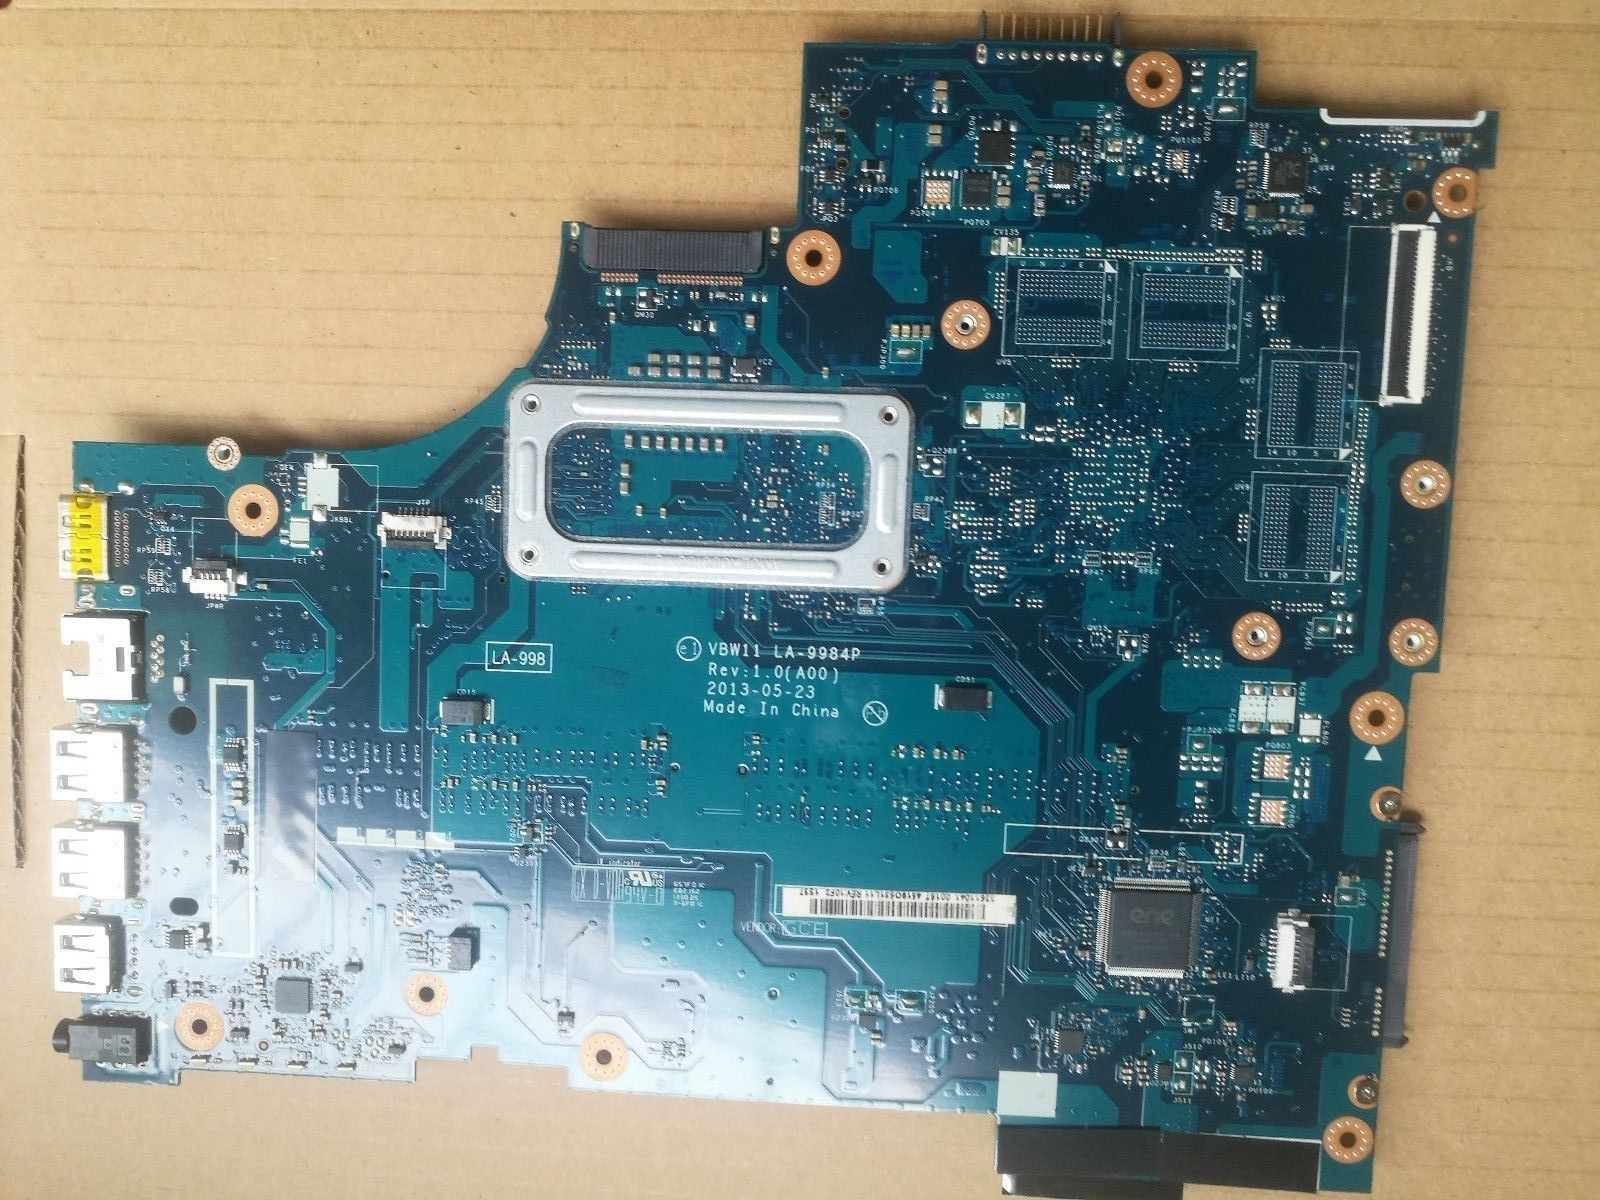 Dell Inspiron 17R 5737 Motherboard i3-4010U and 50 similar items